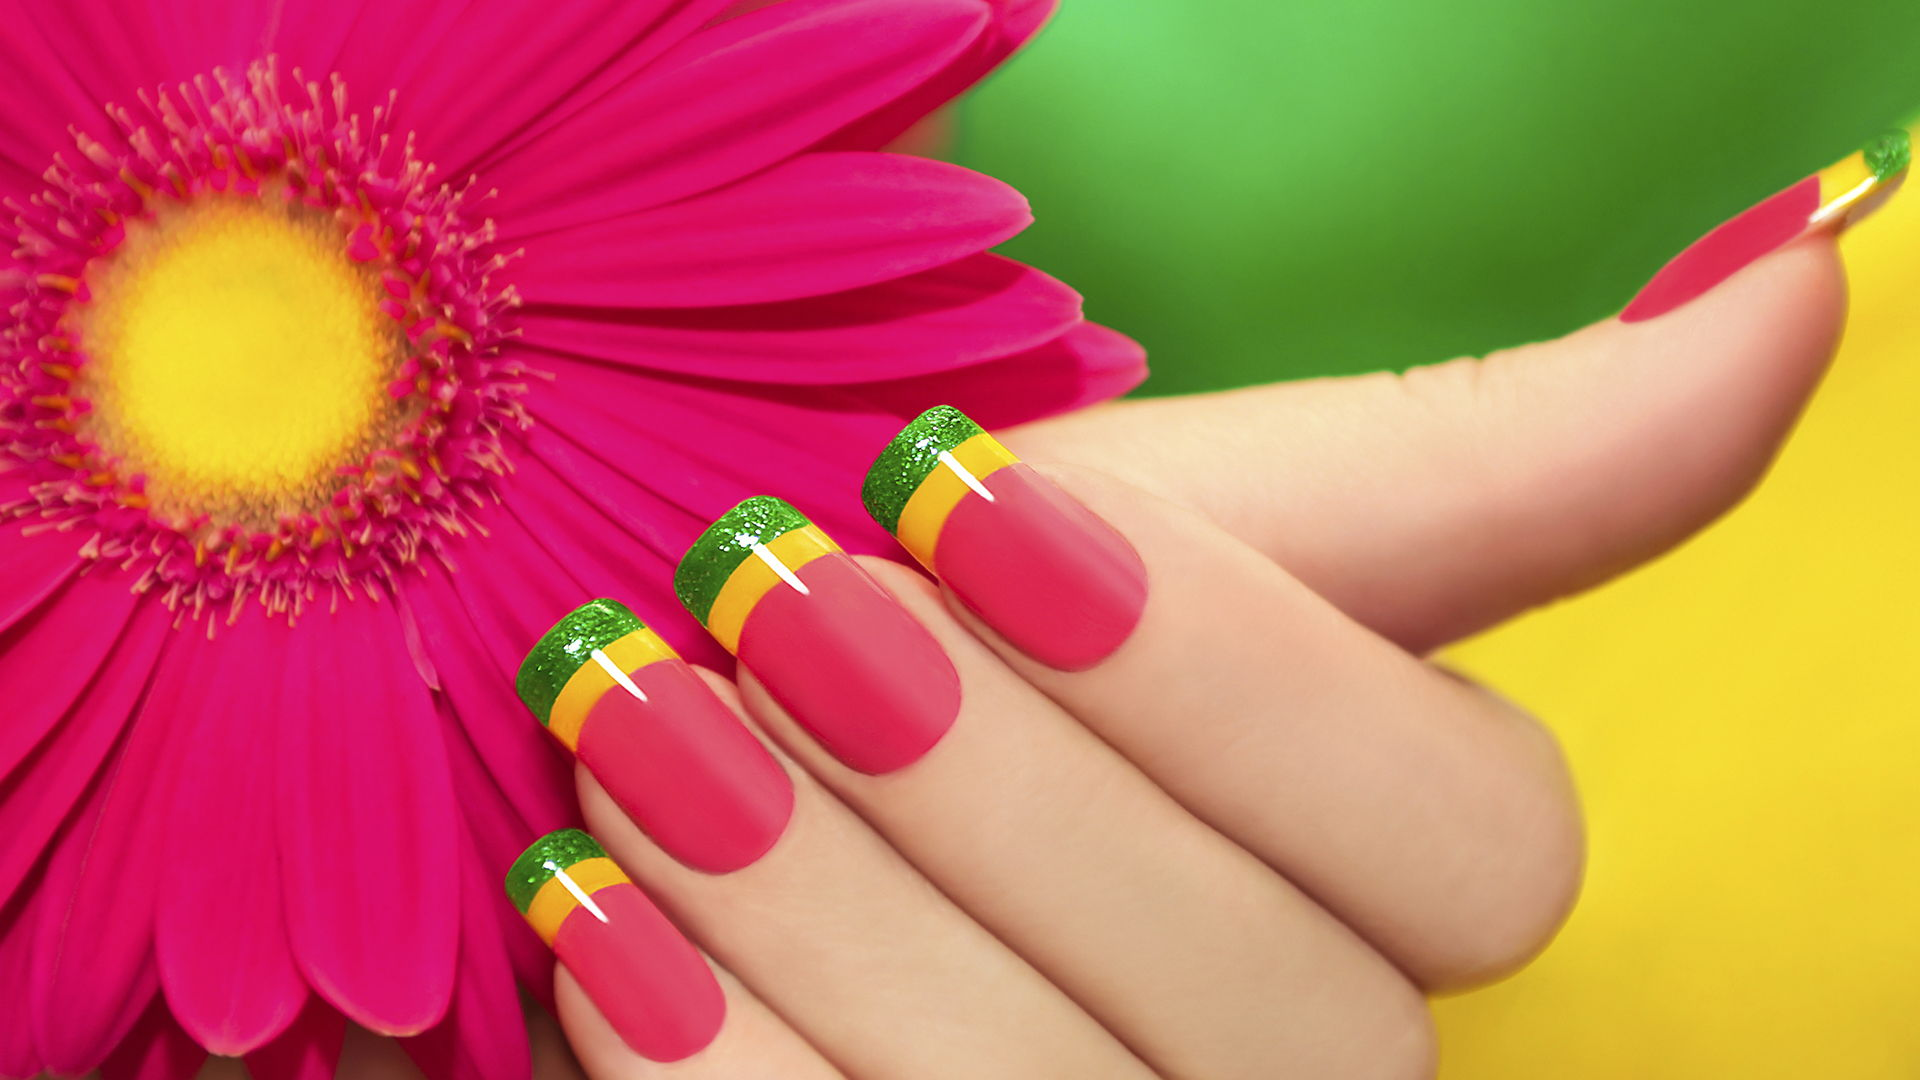 Brightly colored manicure | Sheknows.com